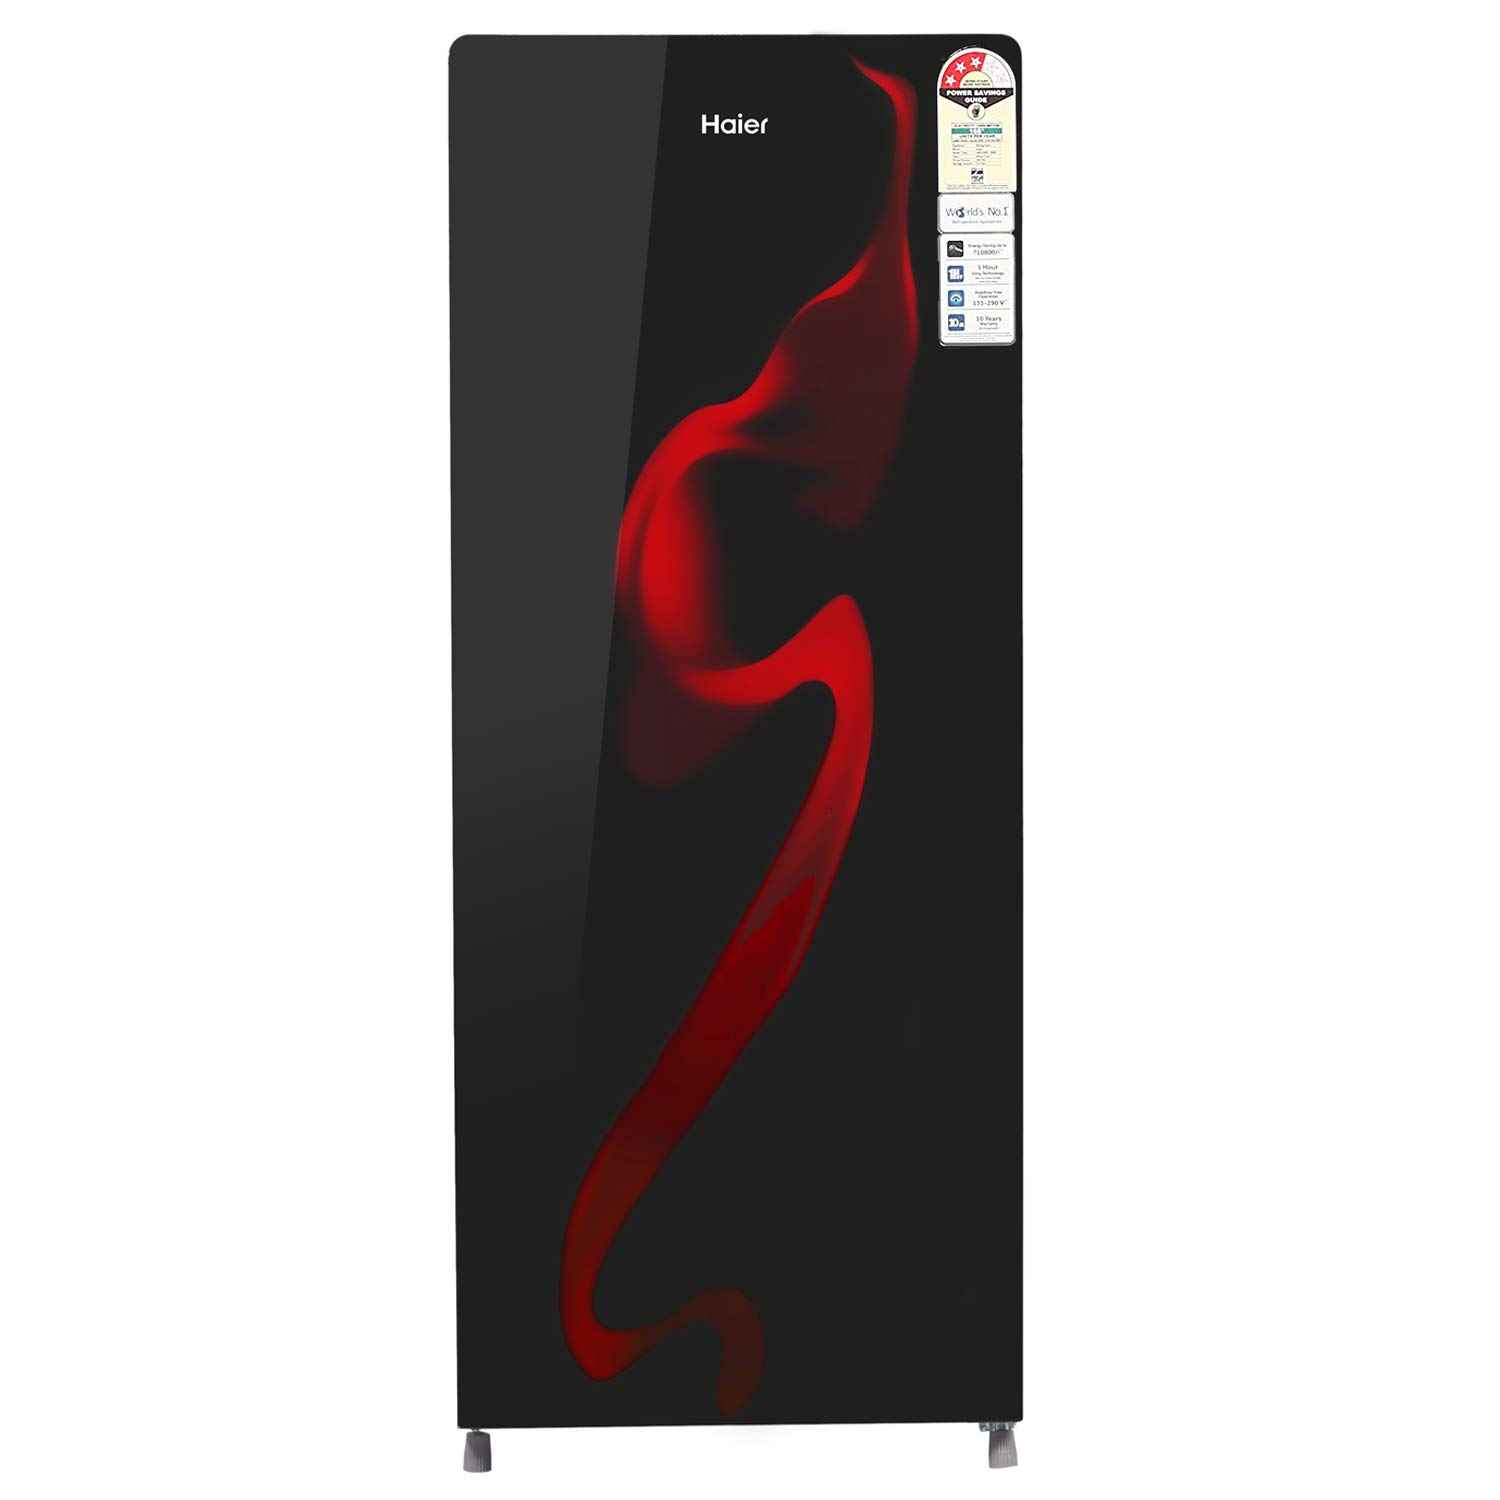 deals coupon sale Haier 220 L 3 Star Direct-Cool Single Door Refrigerator (HRD-2203CSG-E, Black Spiral Glass) toorshop toor shop chirag electronics